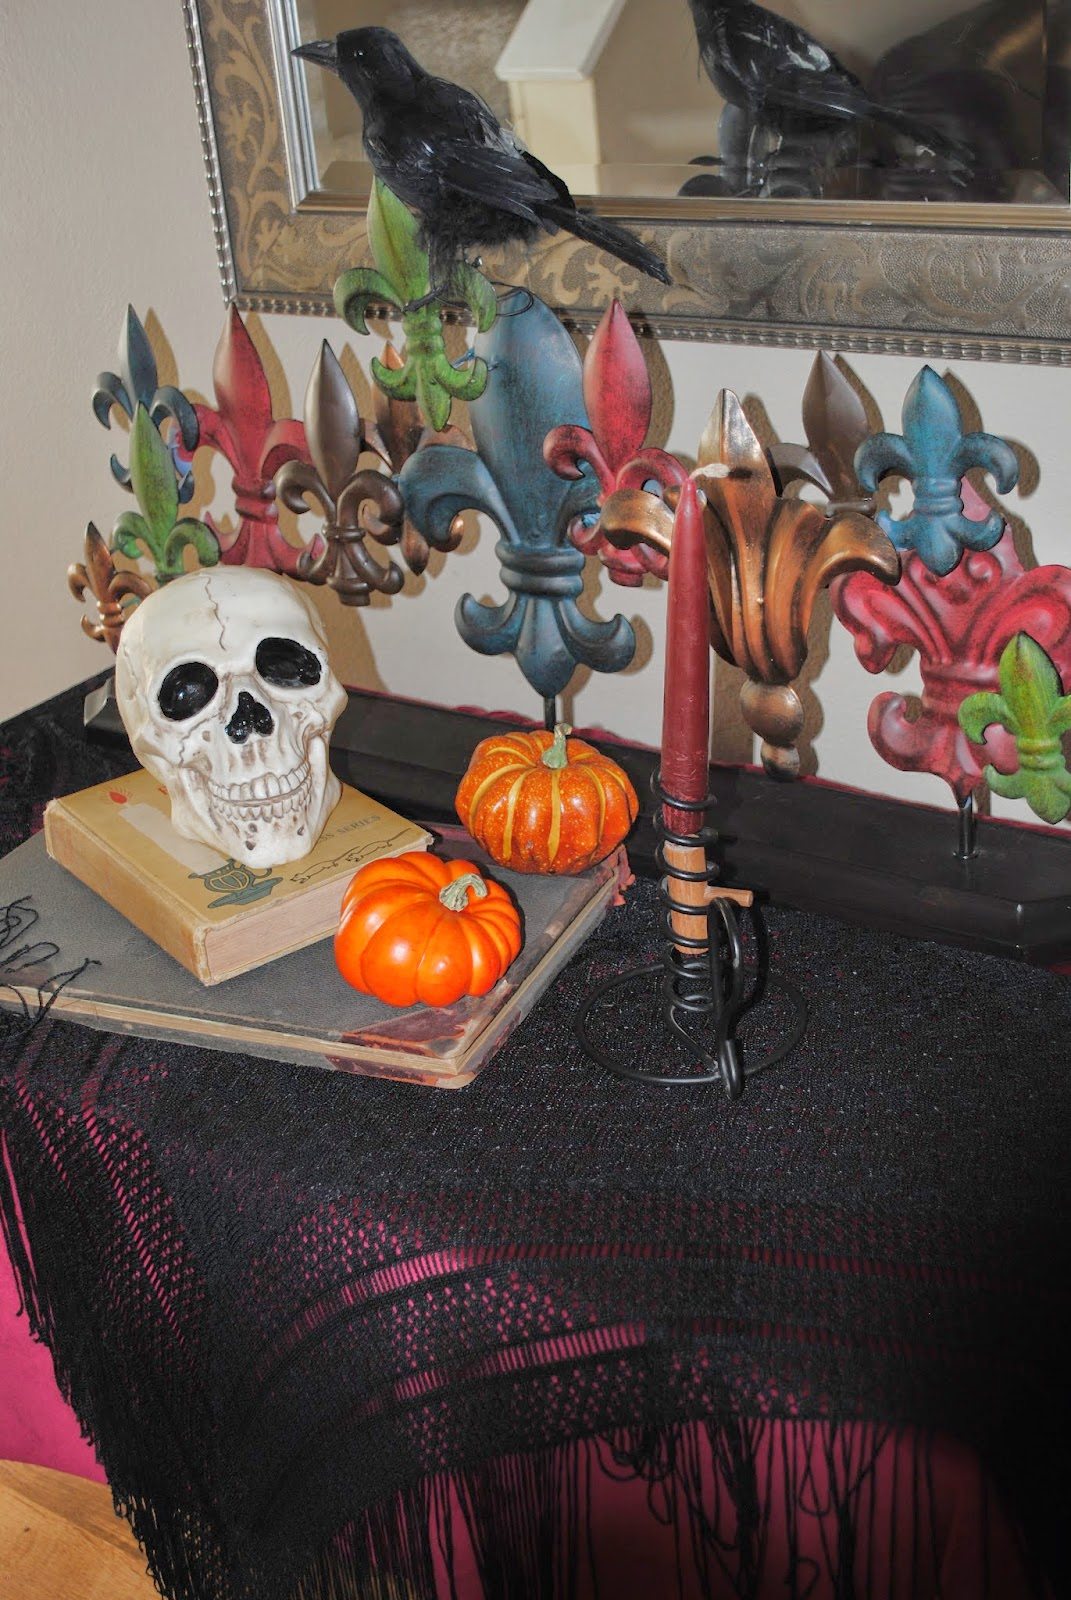 Good Golly, Ms. Molly!: Halloween Decorations and Felt ...